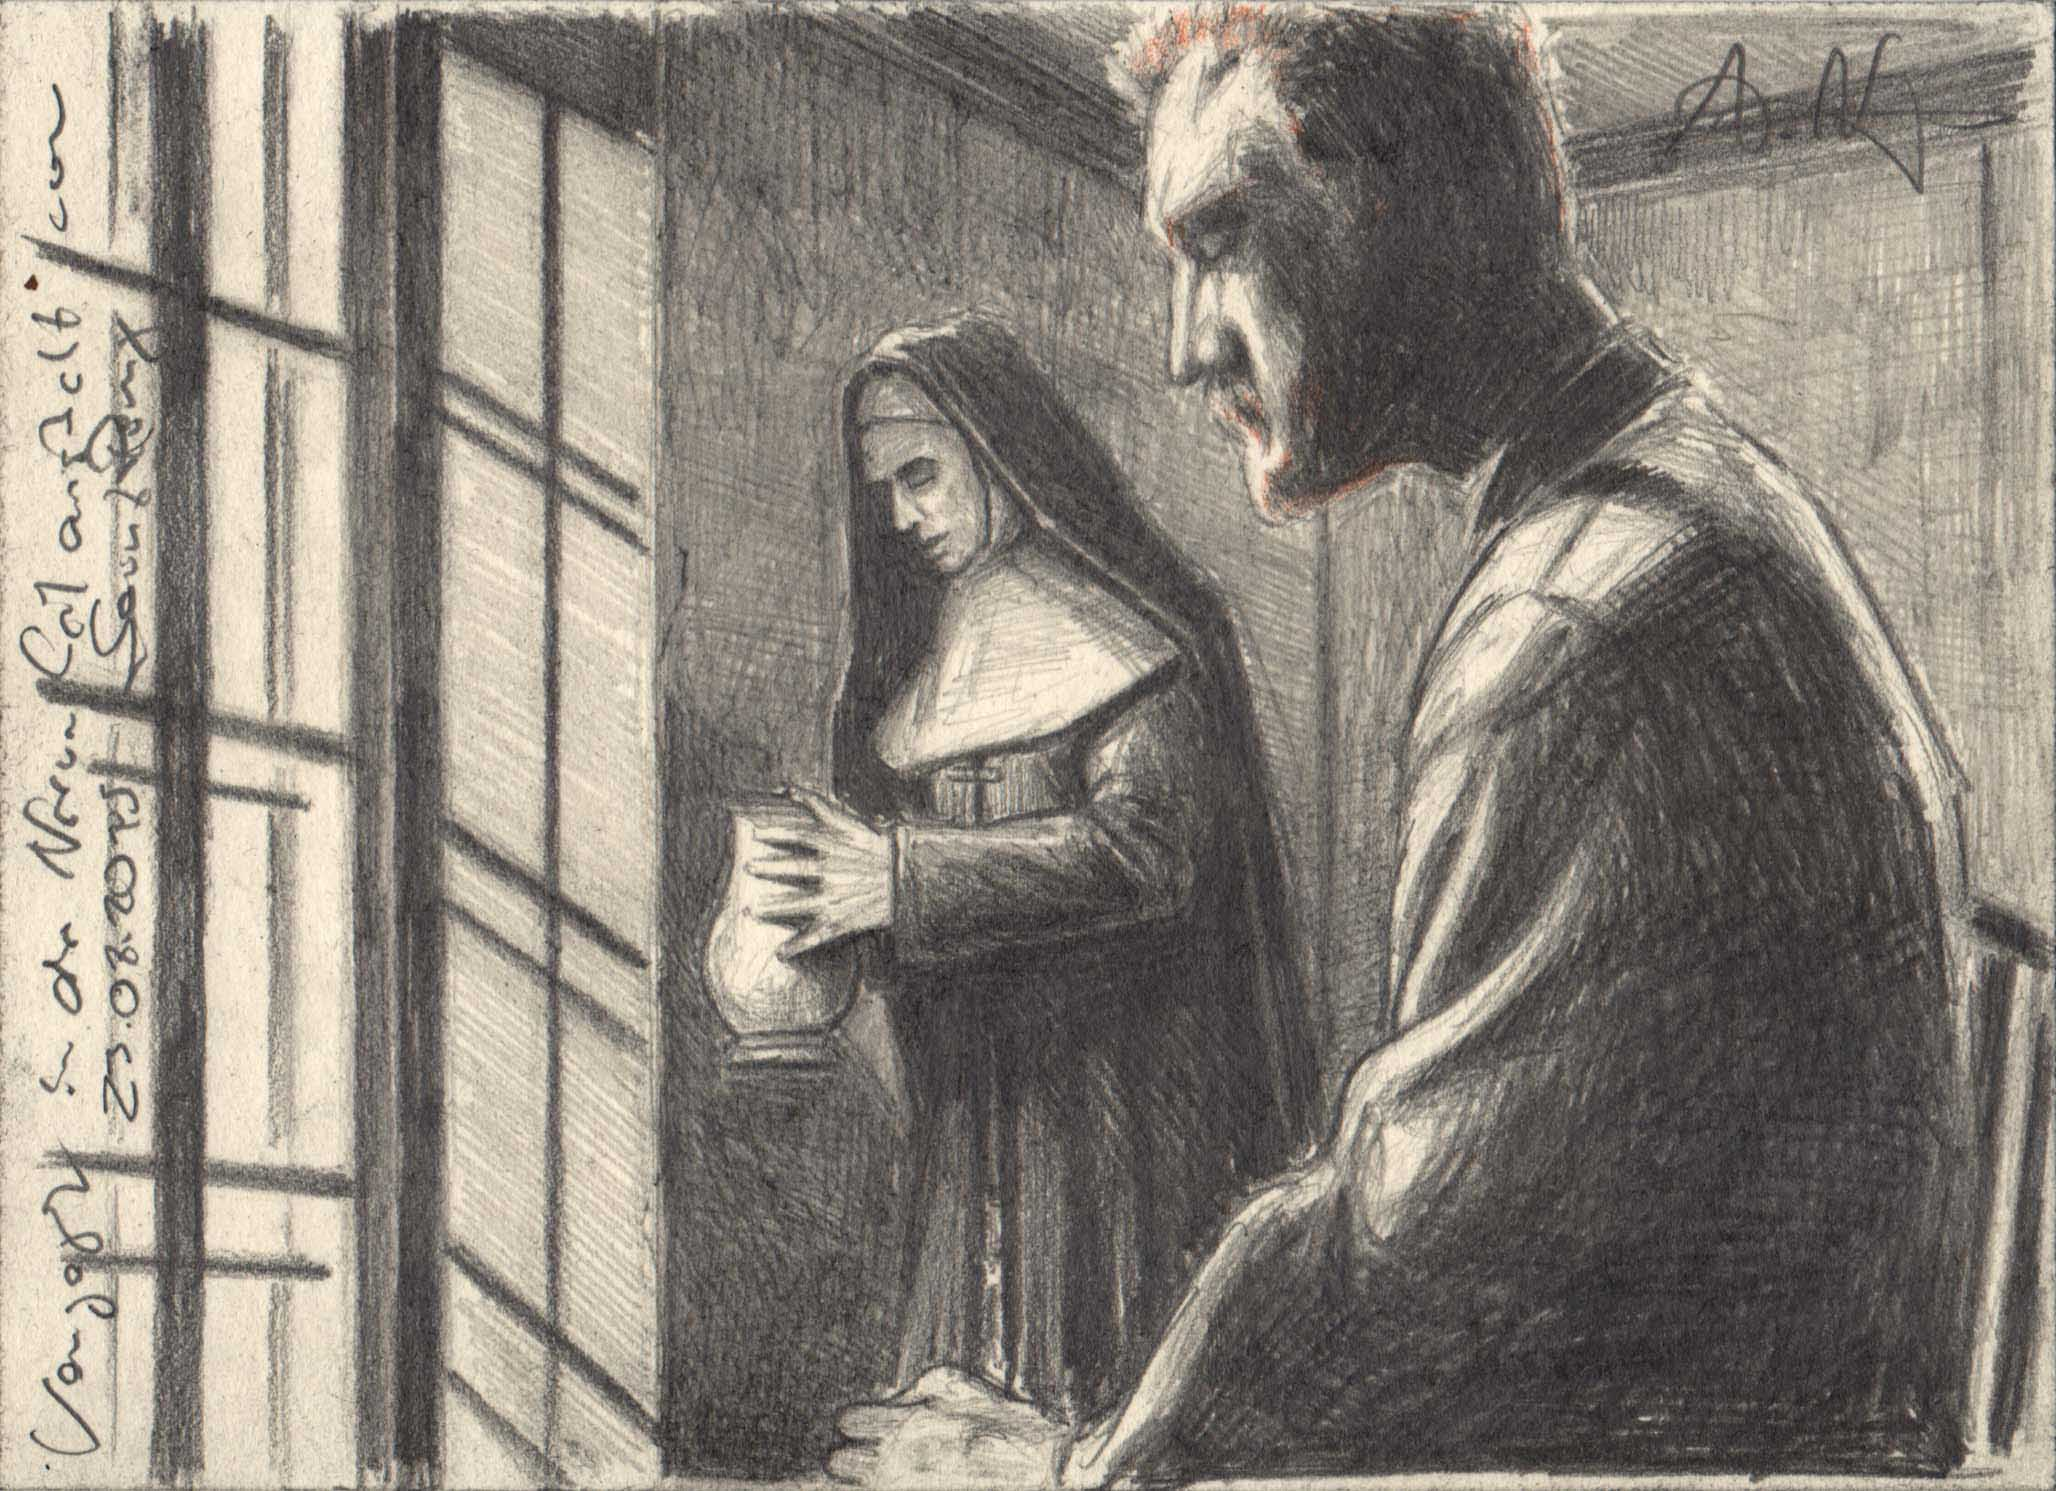 Van Gogh in the mental hospital of Saint Rémy